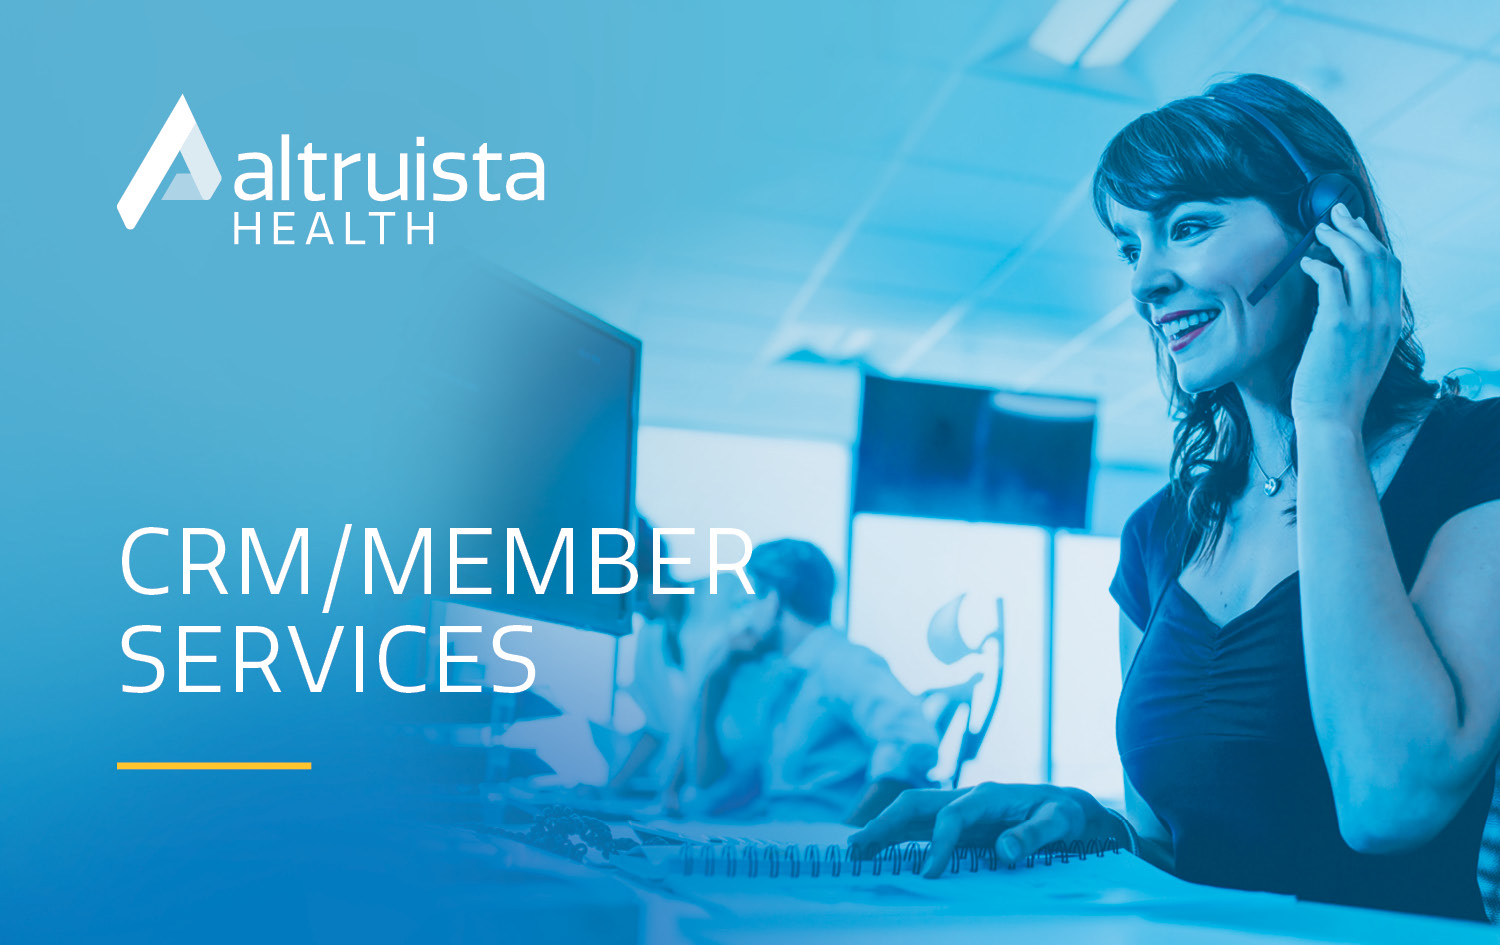 CRM-Member Services Resource Image